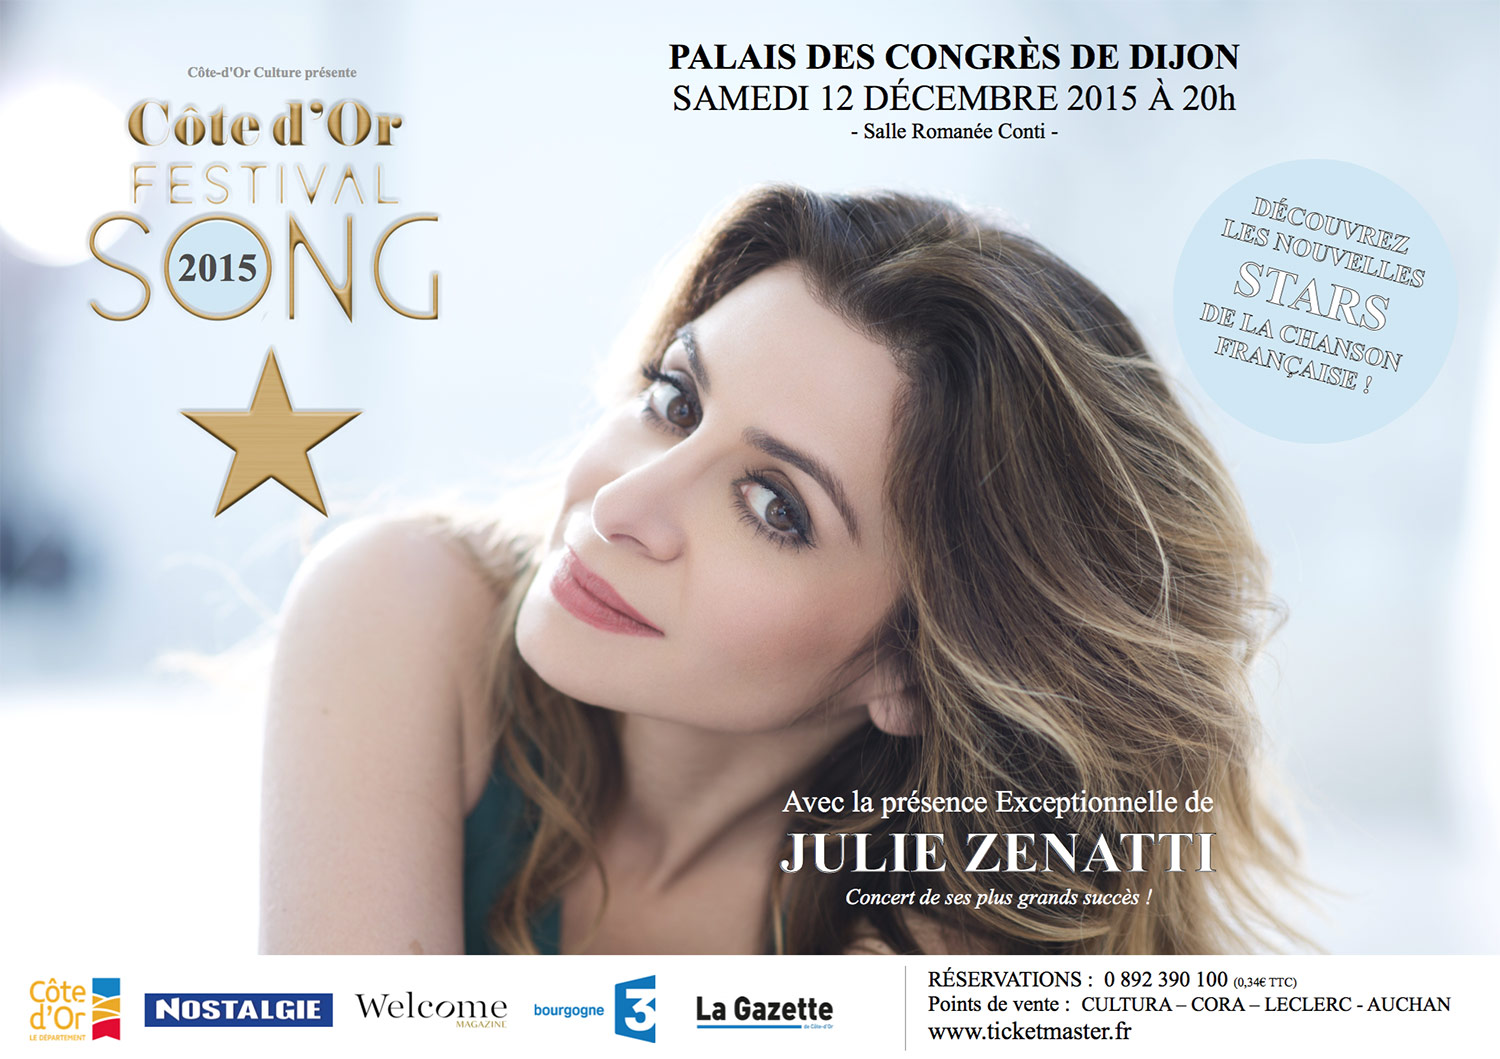 Cote d'Or Festival Song 2015